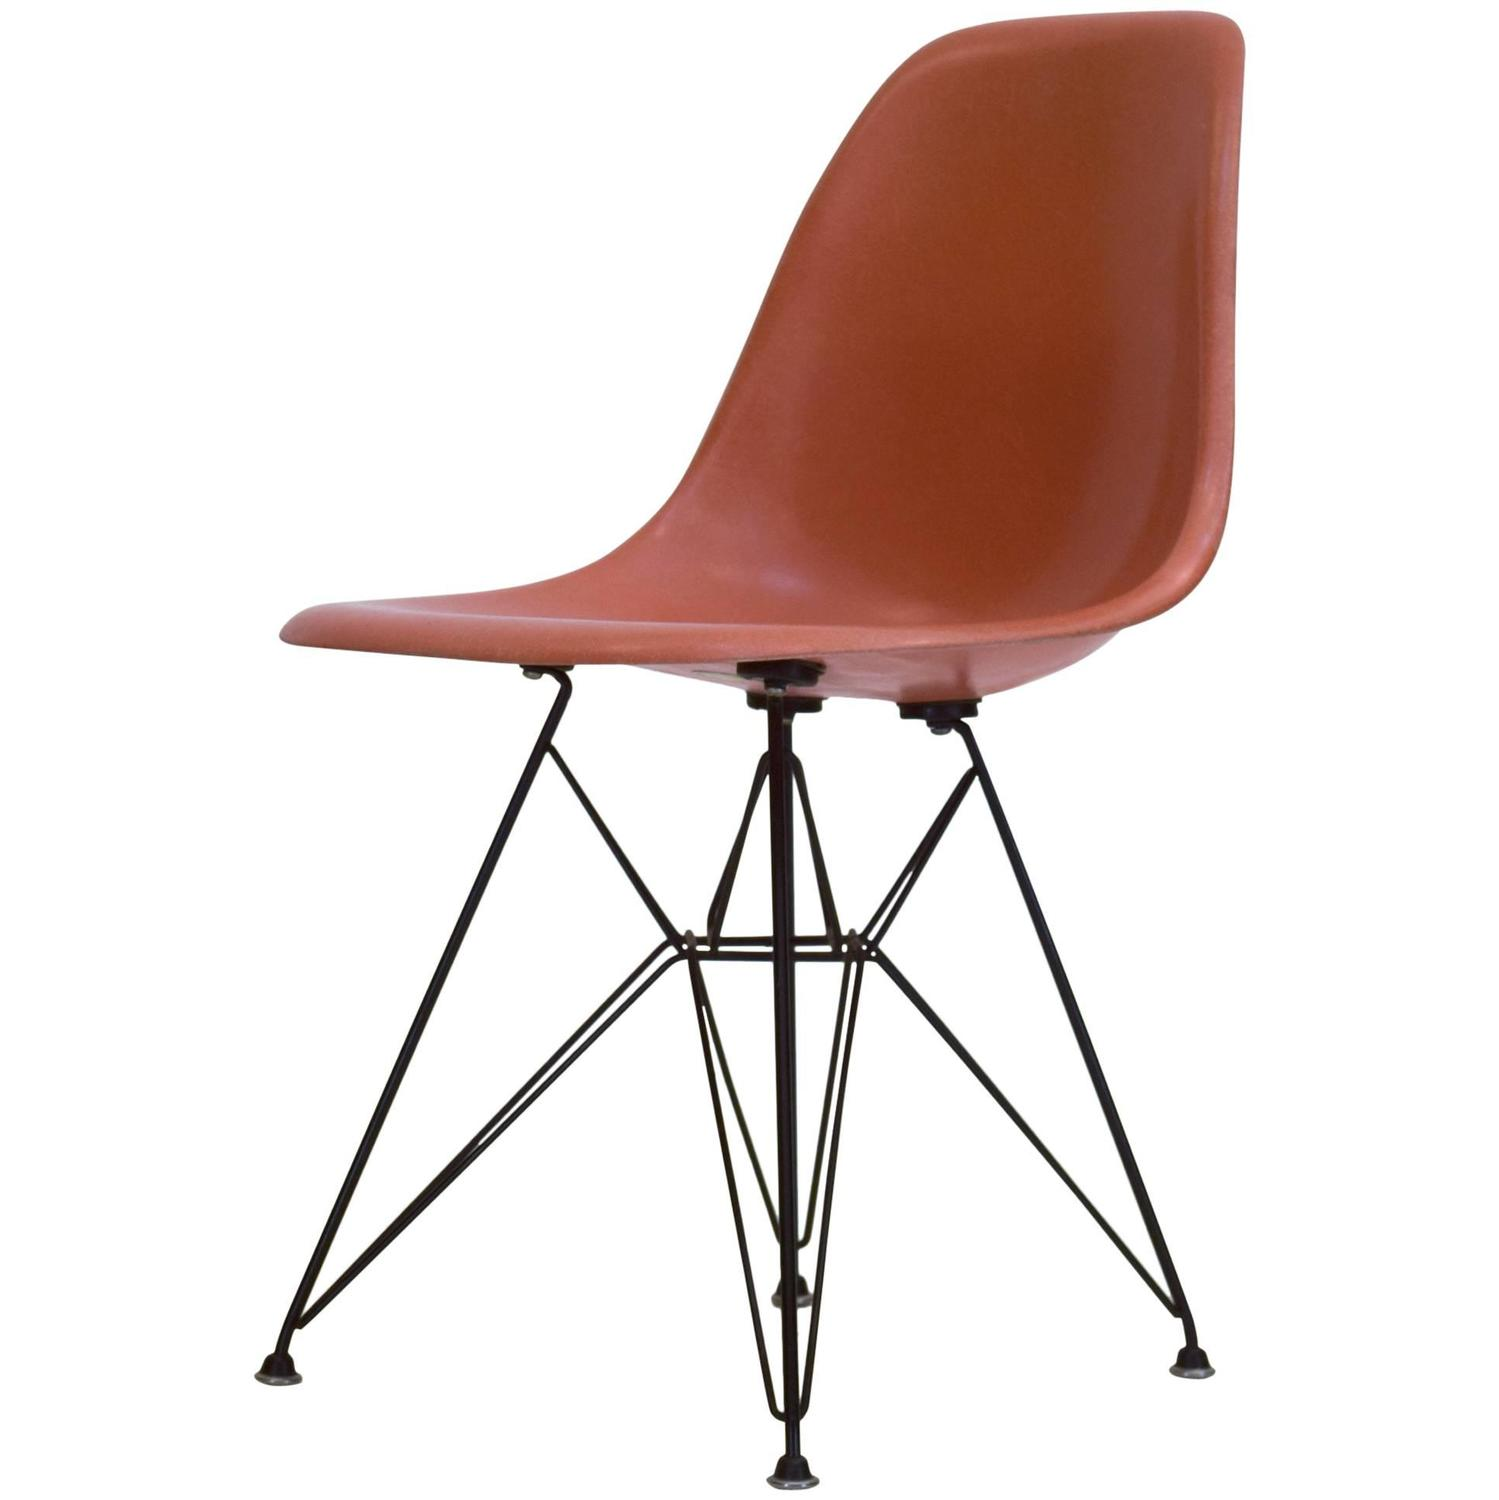 Eames Shell Chair on Original Eiffel Base 1950s For Sale at 1stdibs